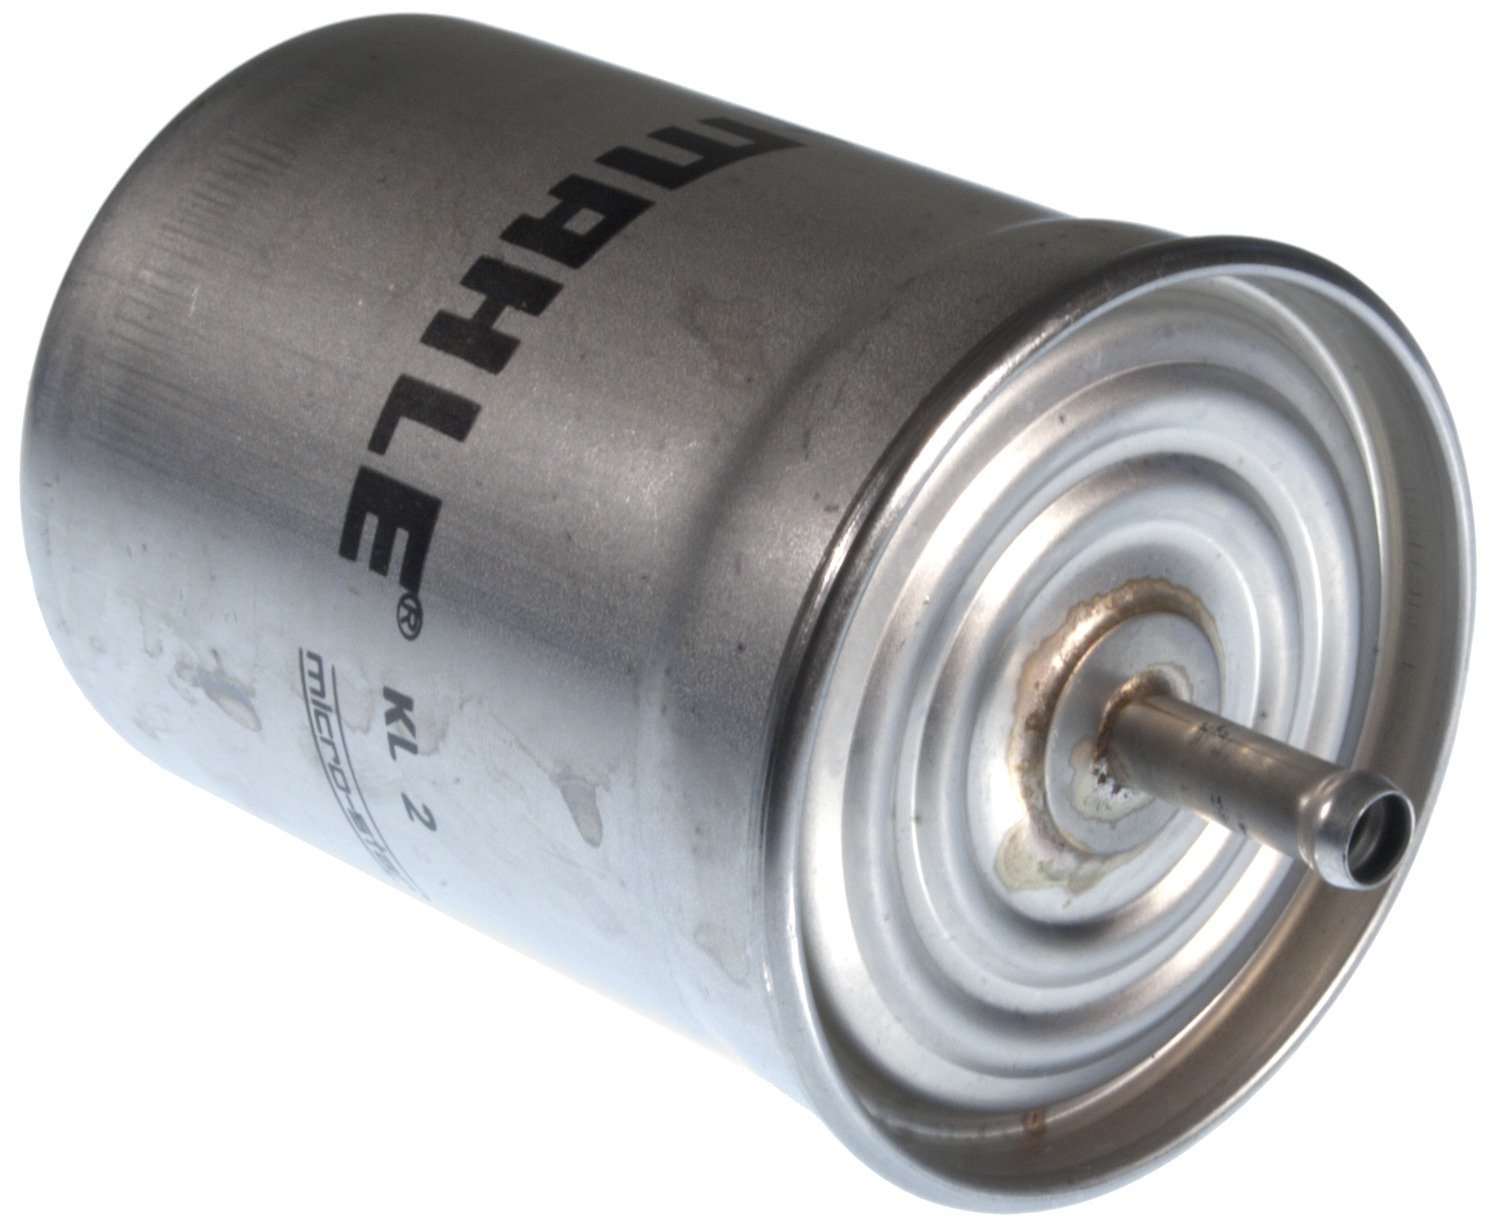 Mahle KL 2 Fuel Filter